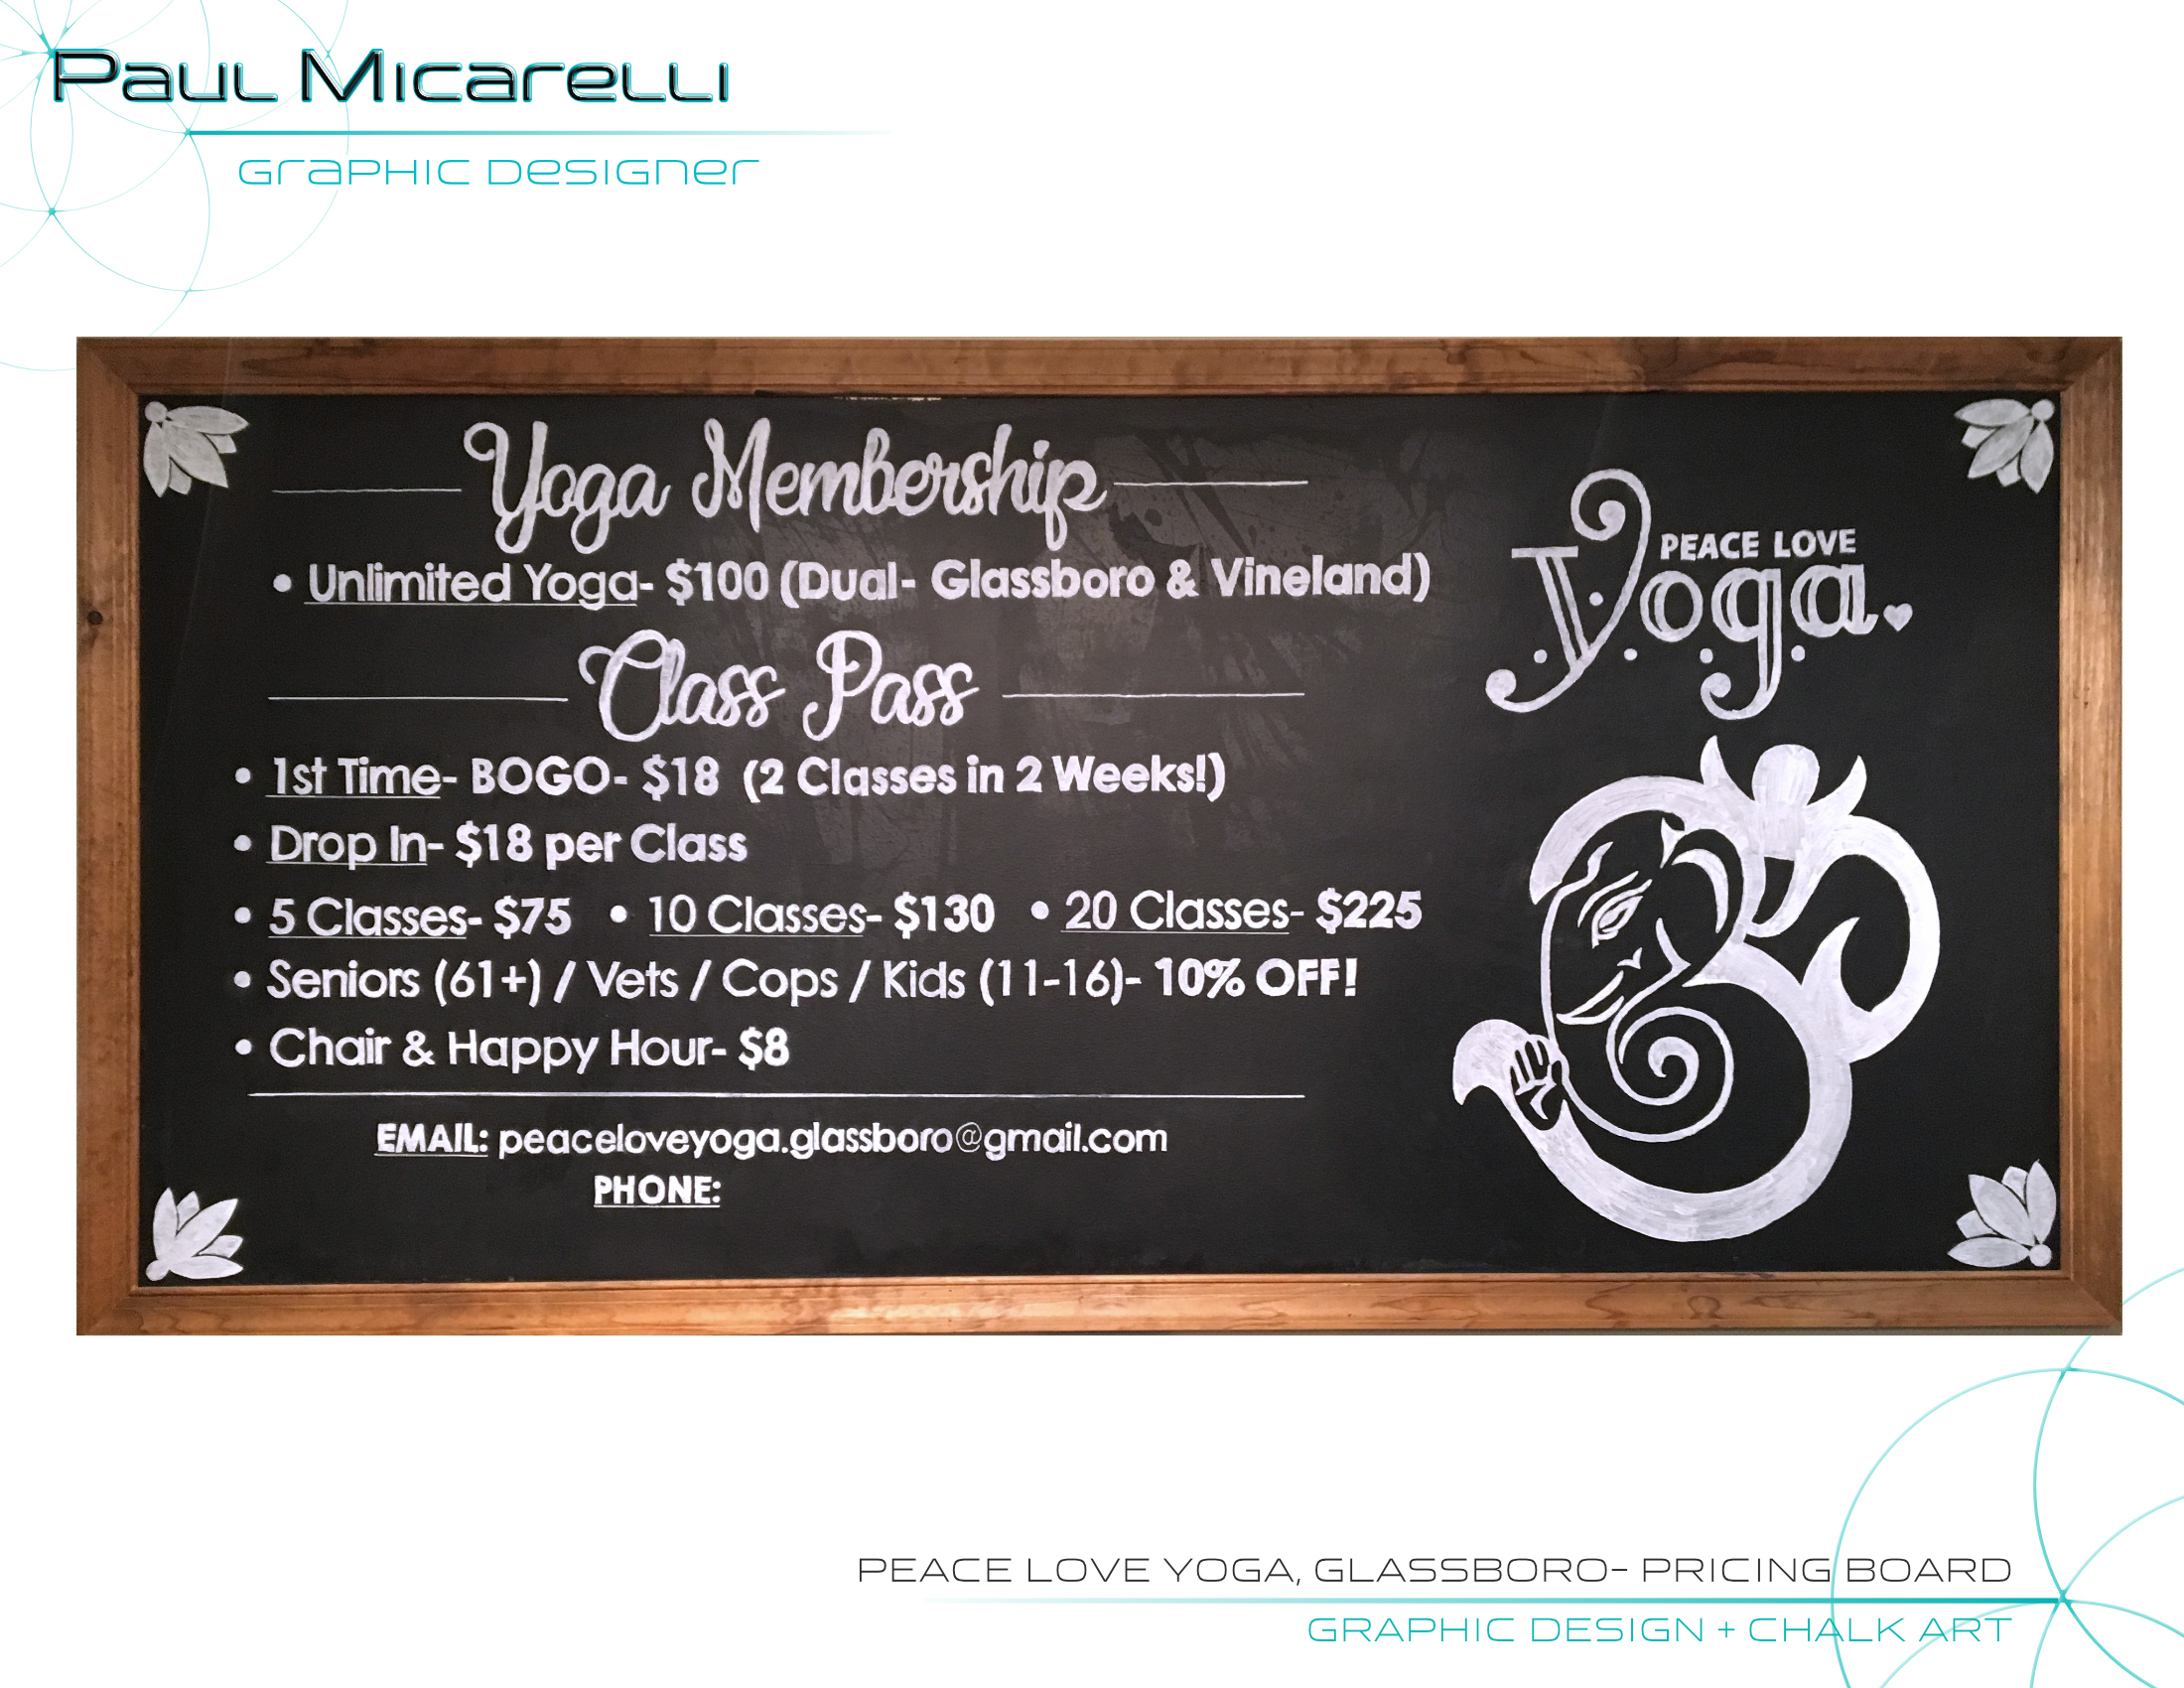 Paul-Micarelli-Peace Love Yoga Glassboro